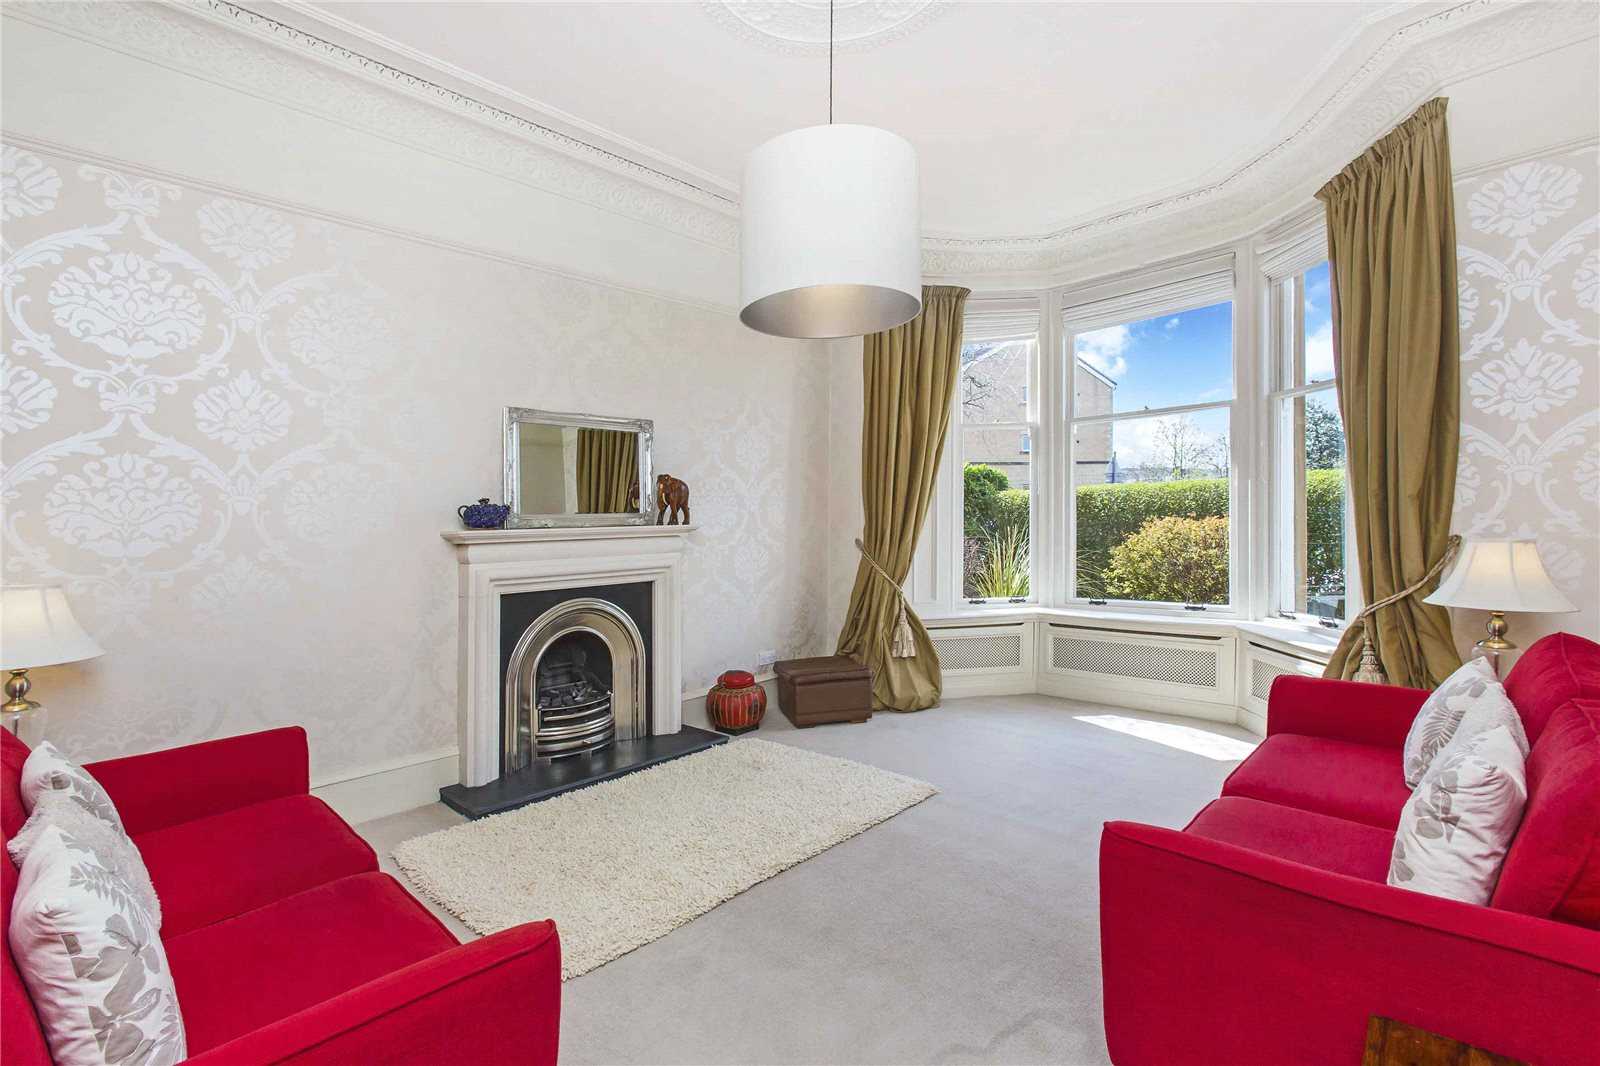 Our Property of the Week: 53 Old Castle Road, Glasgow